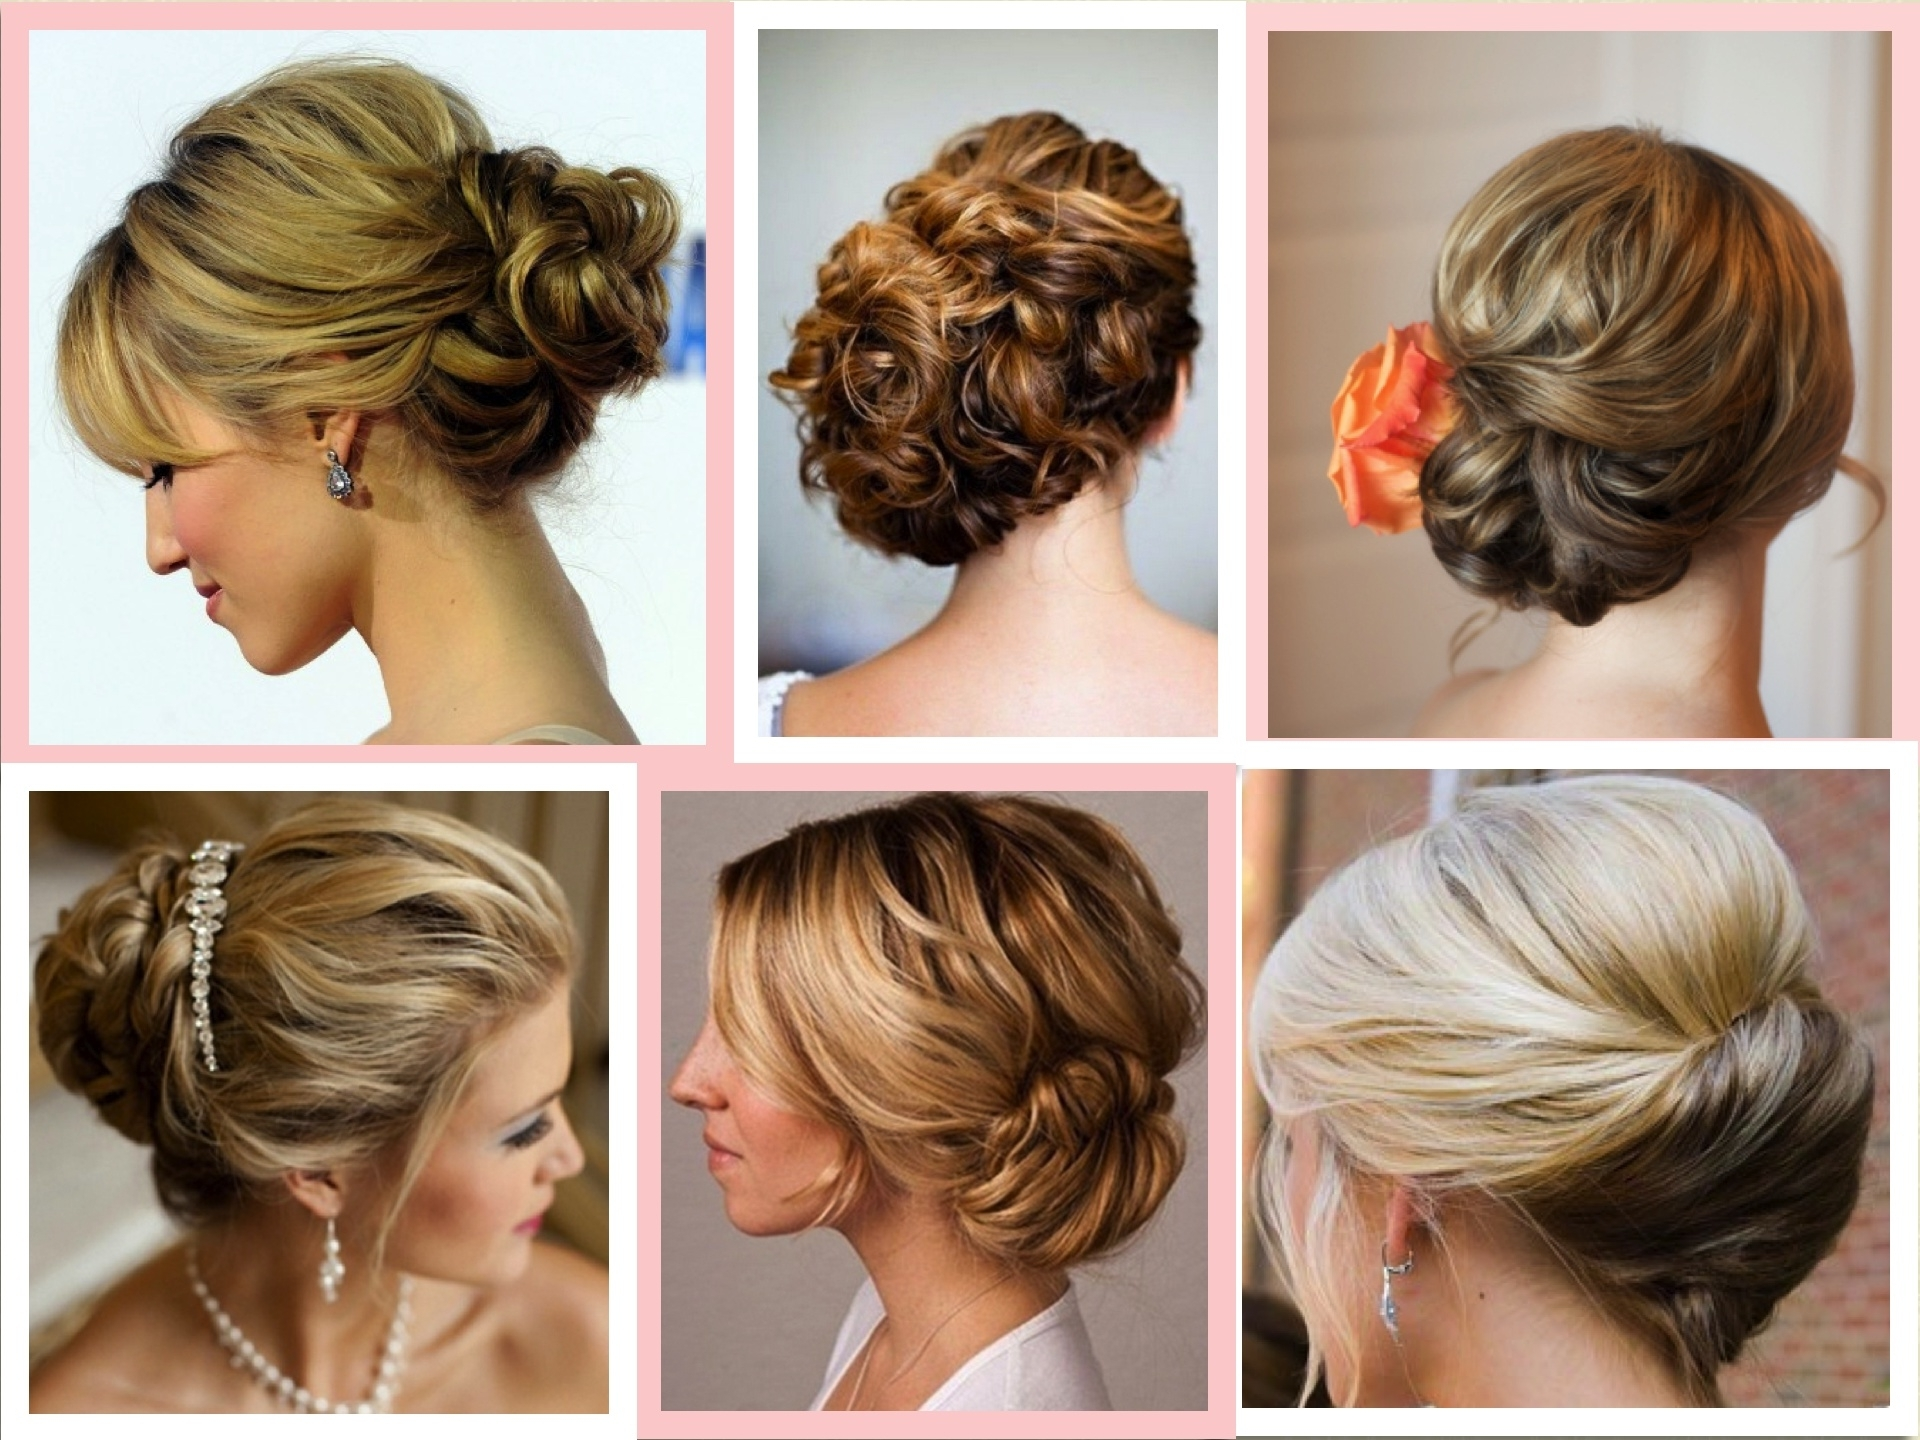 Wedding Hairstyles View Party Hairstyle Photo With Ideas For In Intended For Newest Hairstyles For Long Hair For A Wedding Party (View 9 of 15)